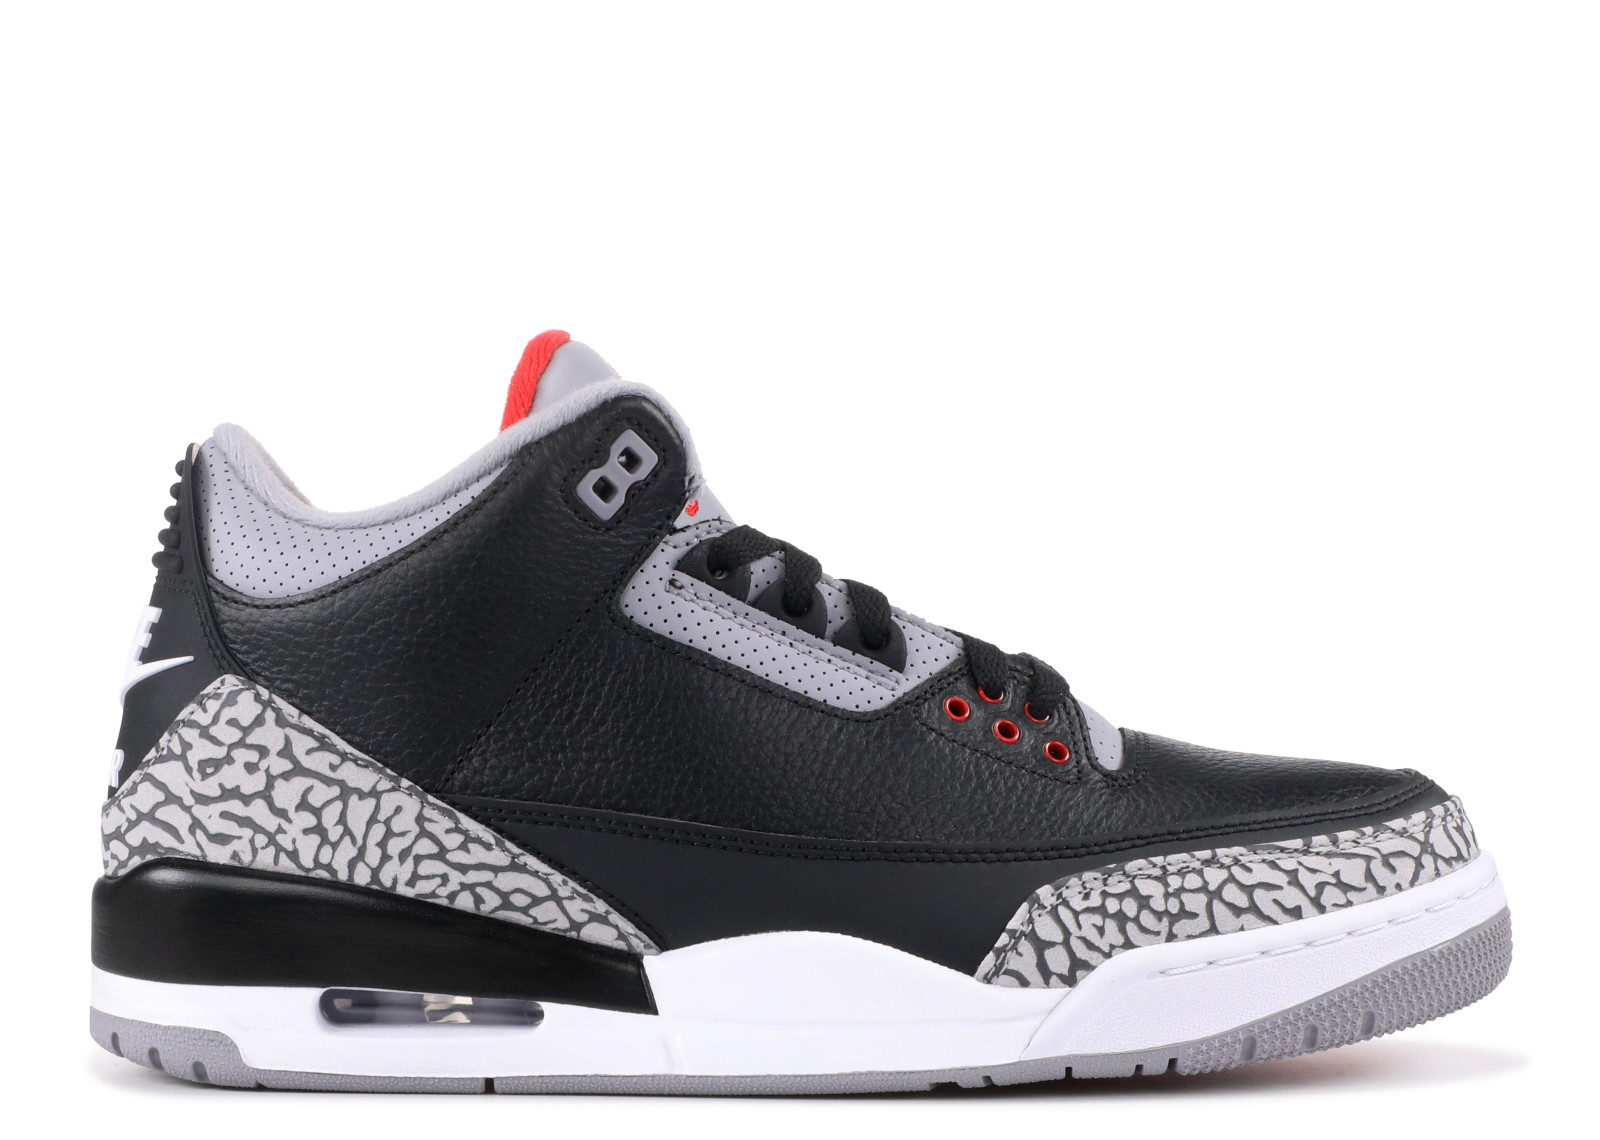 AIR JORDAN 3 OG RETRO OG 'BLACK CEMENT 2018' - 854262-001 - SIZE 11